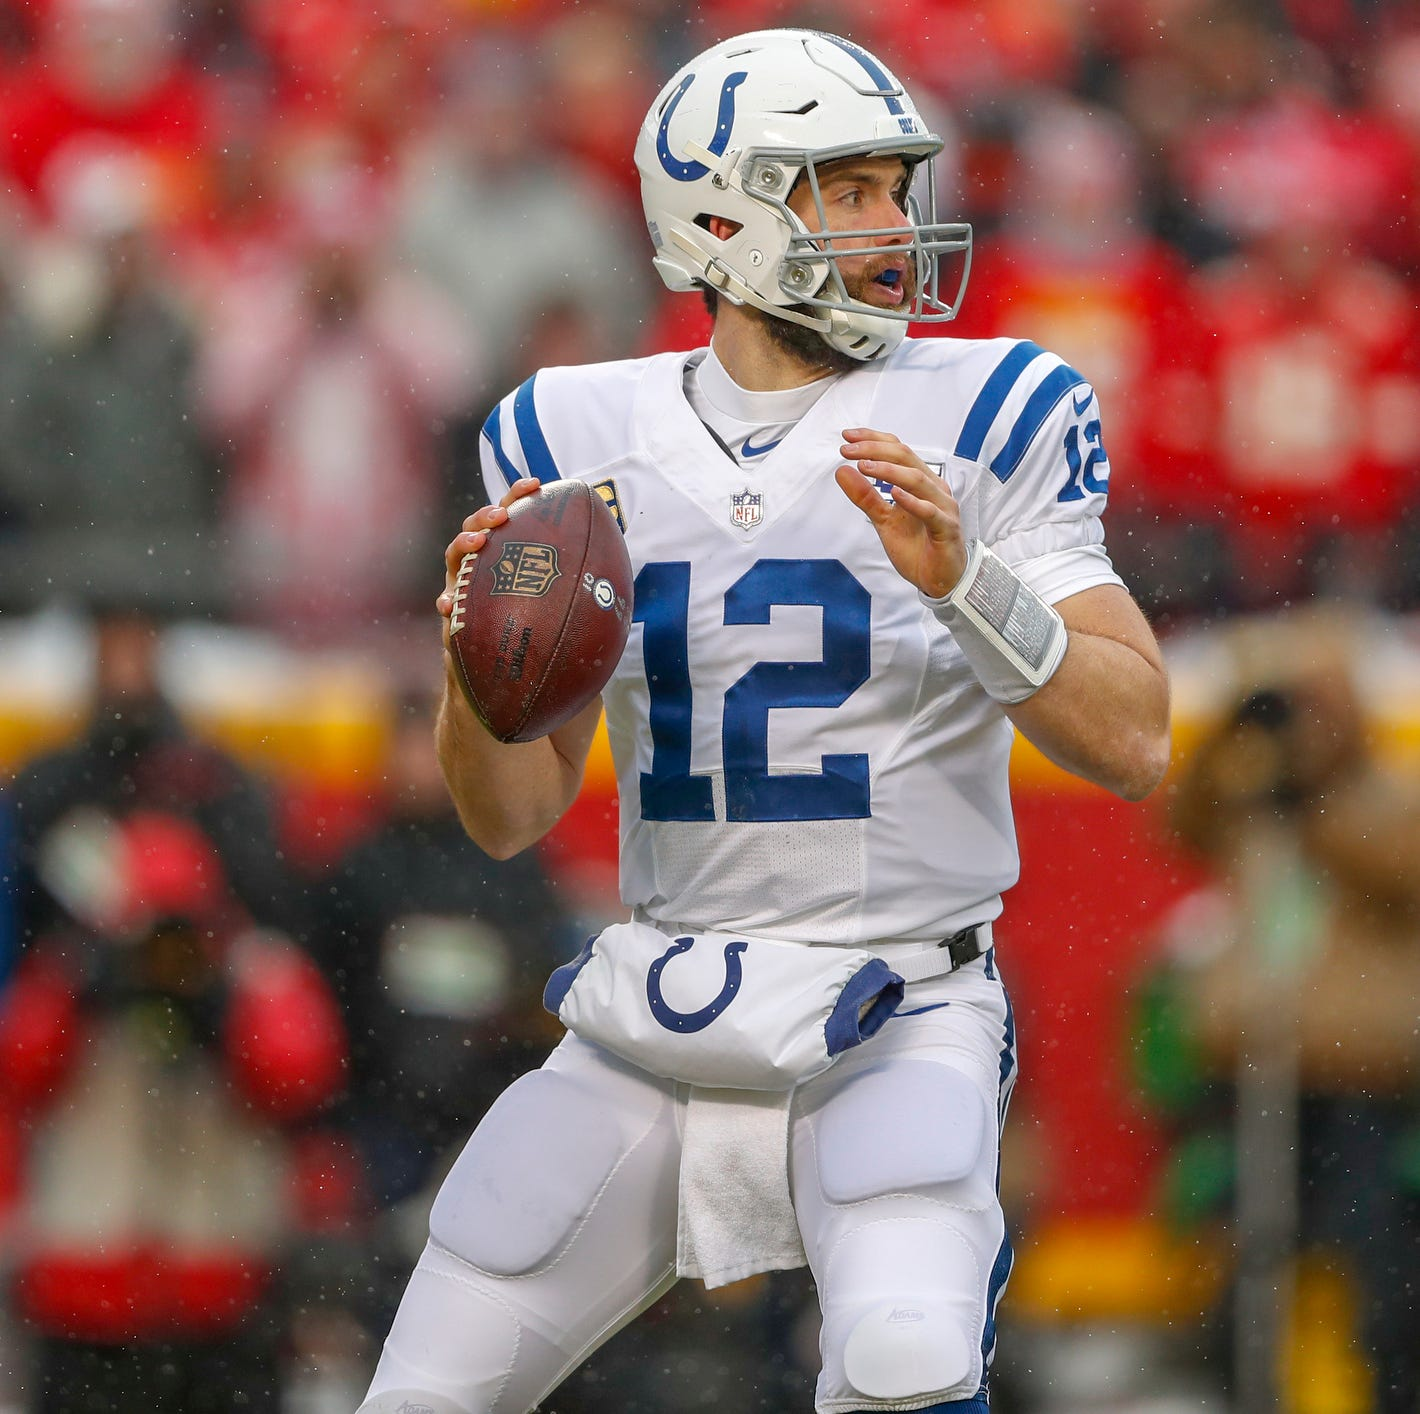 Andrew Luck named to Pro Bowl in place of Philip Rivers